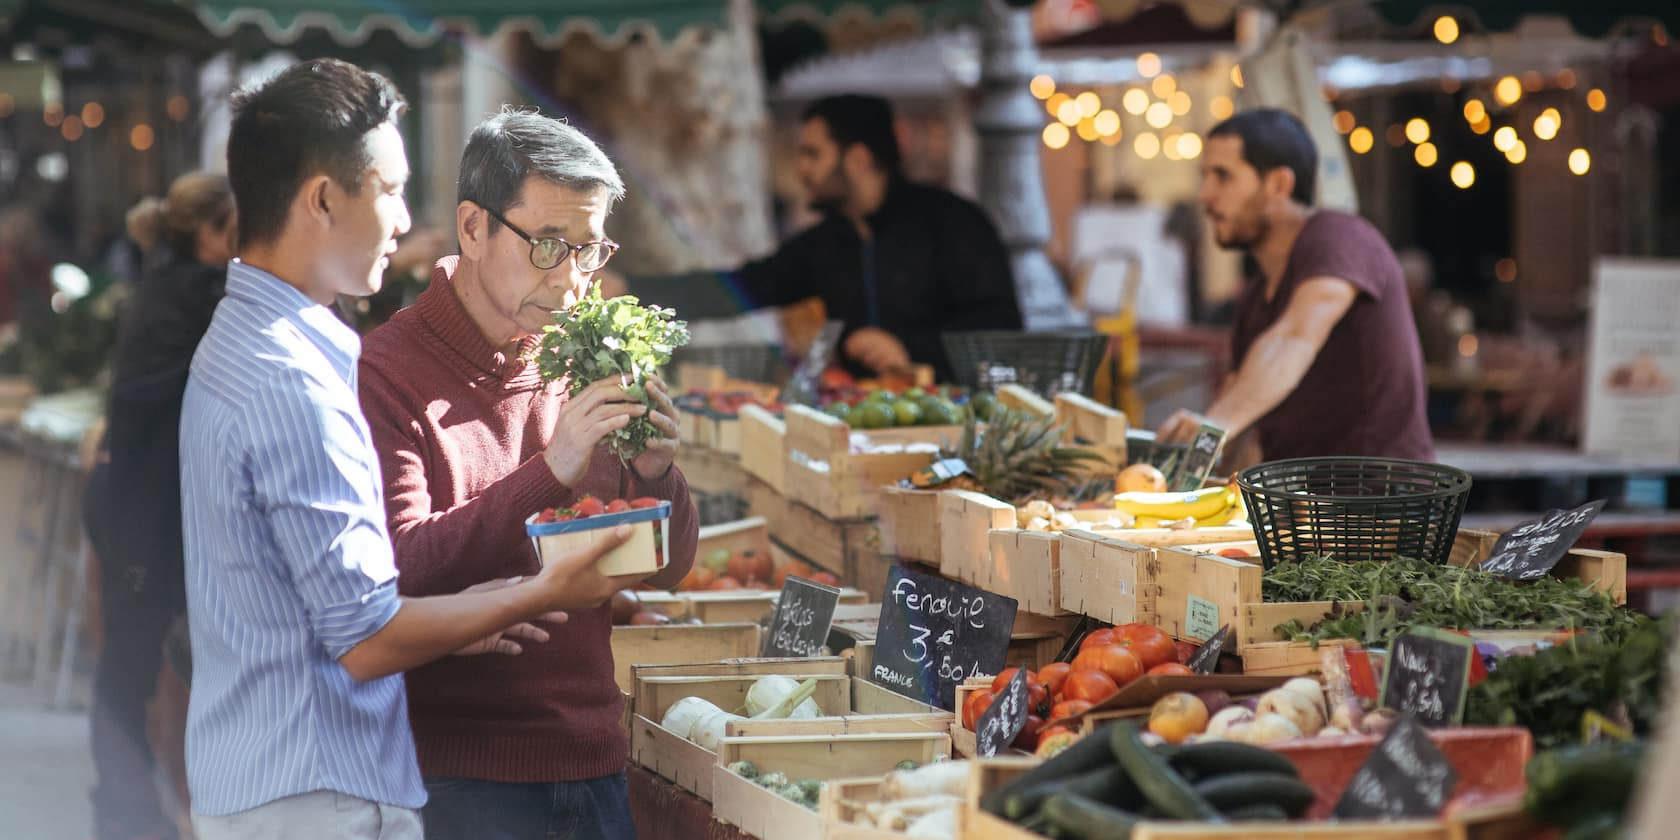 Two men check out the produce at an open-air market in Aix-en-Provence.